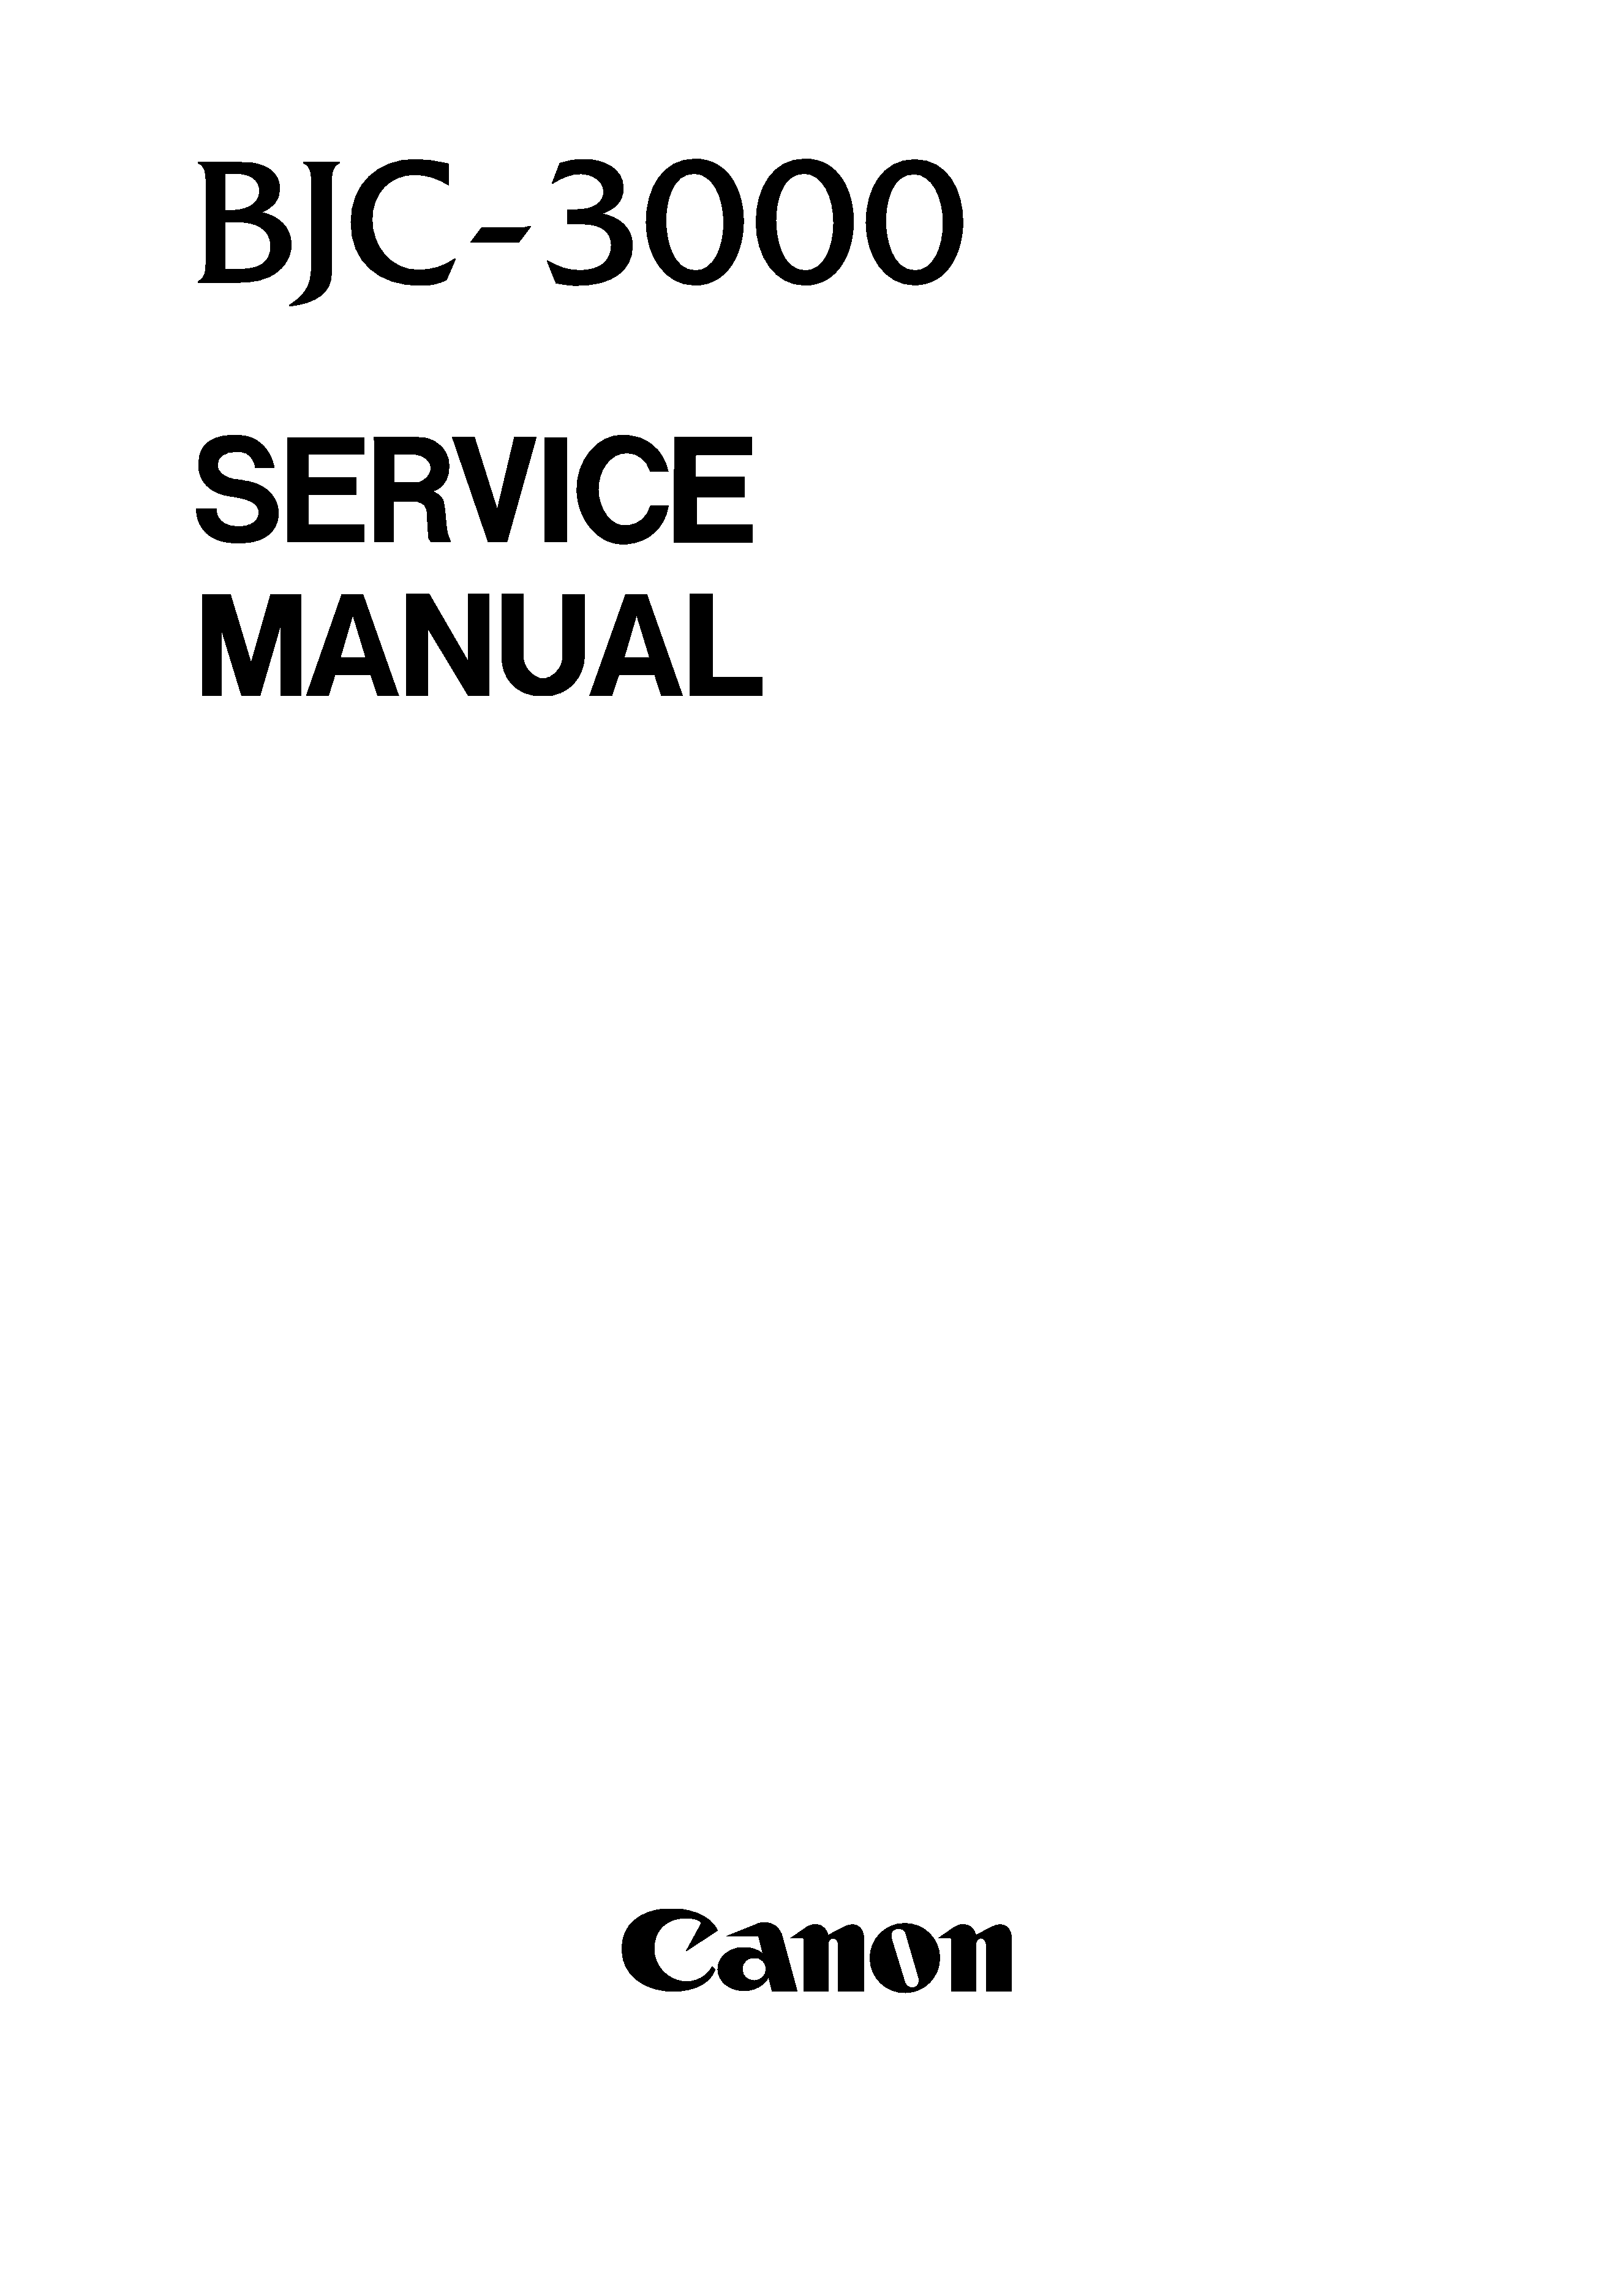 canon bjc3000 service manual immediate download. Black Bedroom Furniture Sets. Home Design Ideas